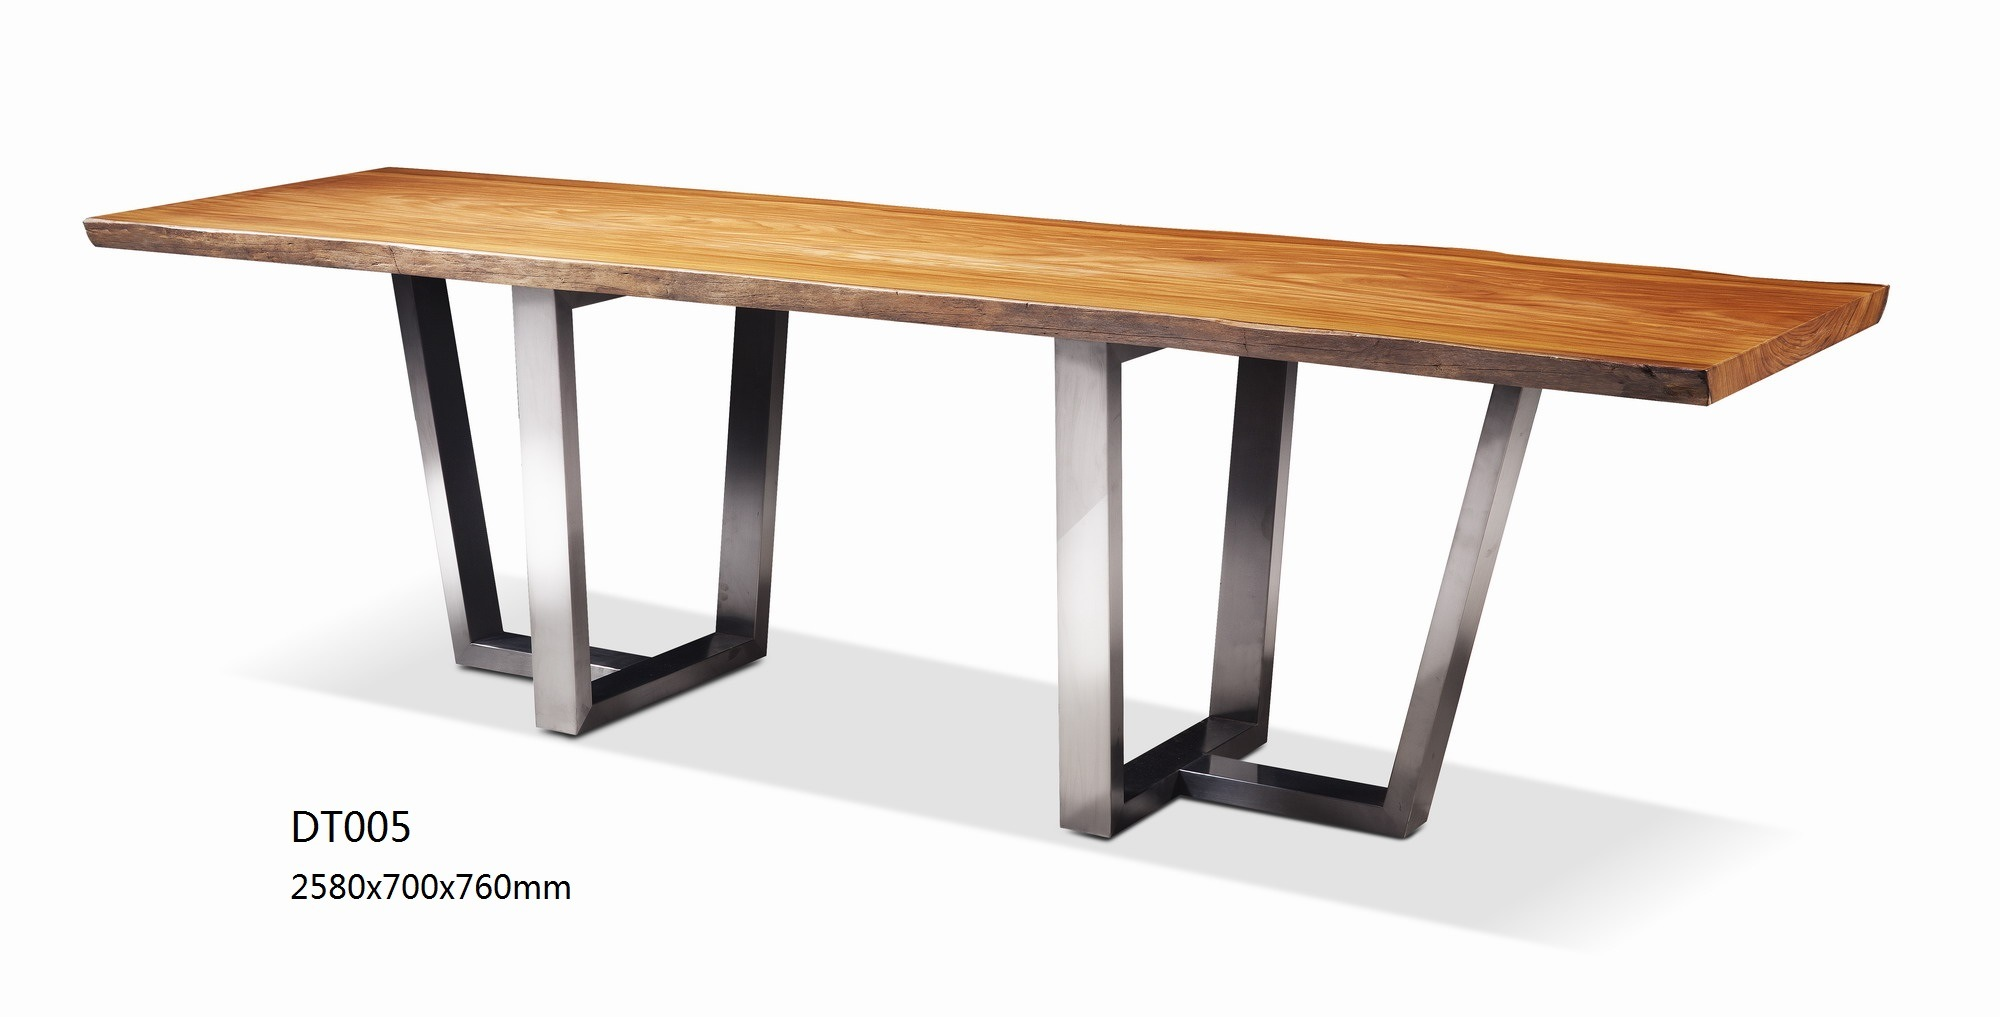 Solid Teak Wood Dining Table Second